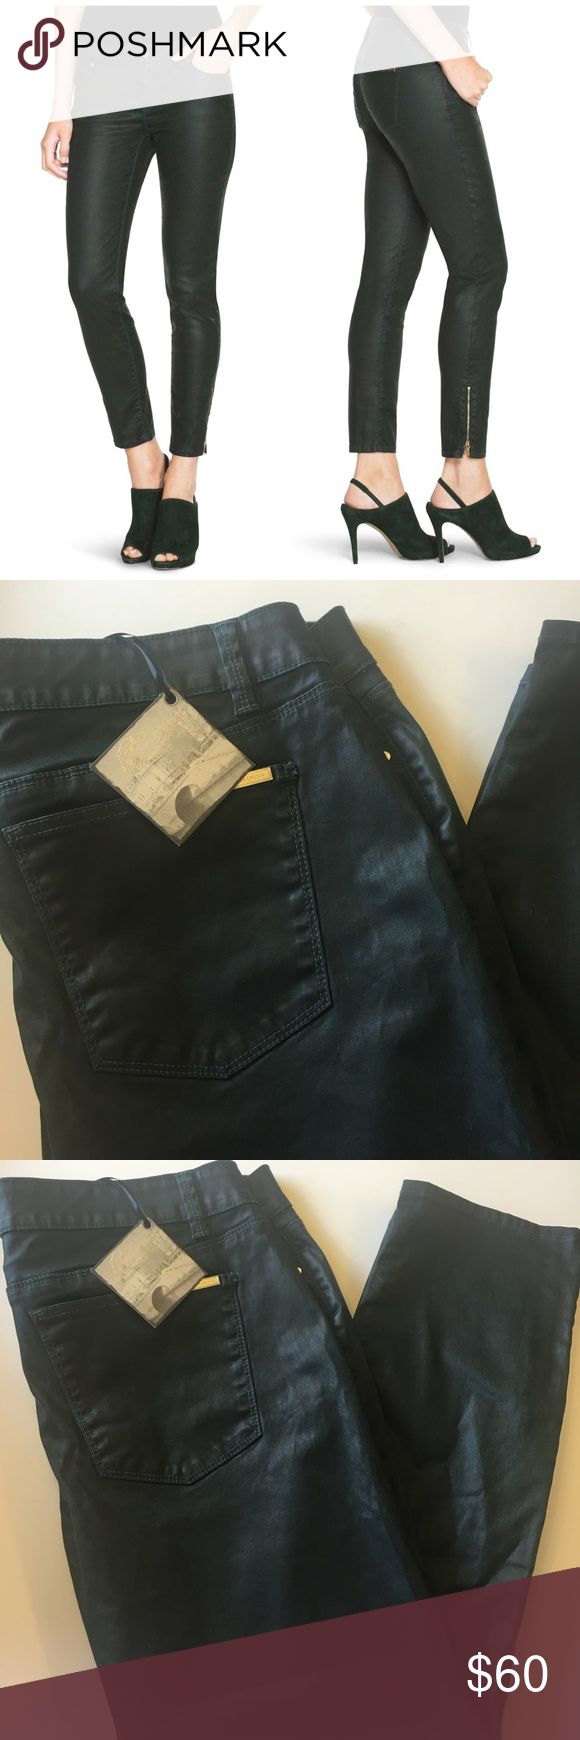 NWT WHBM Dark Green Wax Coated Skinny Zipper Pants So cute and perfectly on trend! Great dressed up or down! Super dark teal green with a wax coating. Size 14. Zipper detail at the ankle. No trades!! 031217150gwpg White House Black Market Pants Skinny